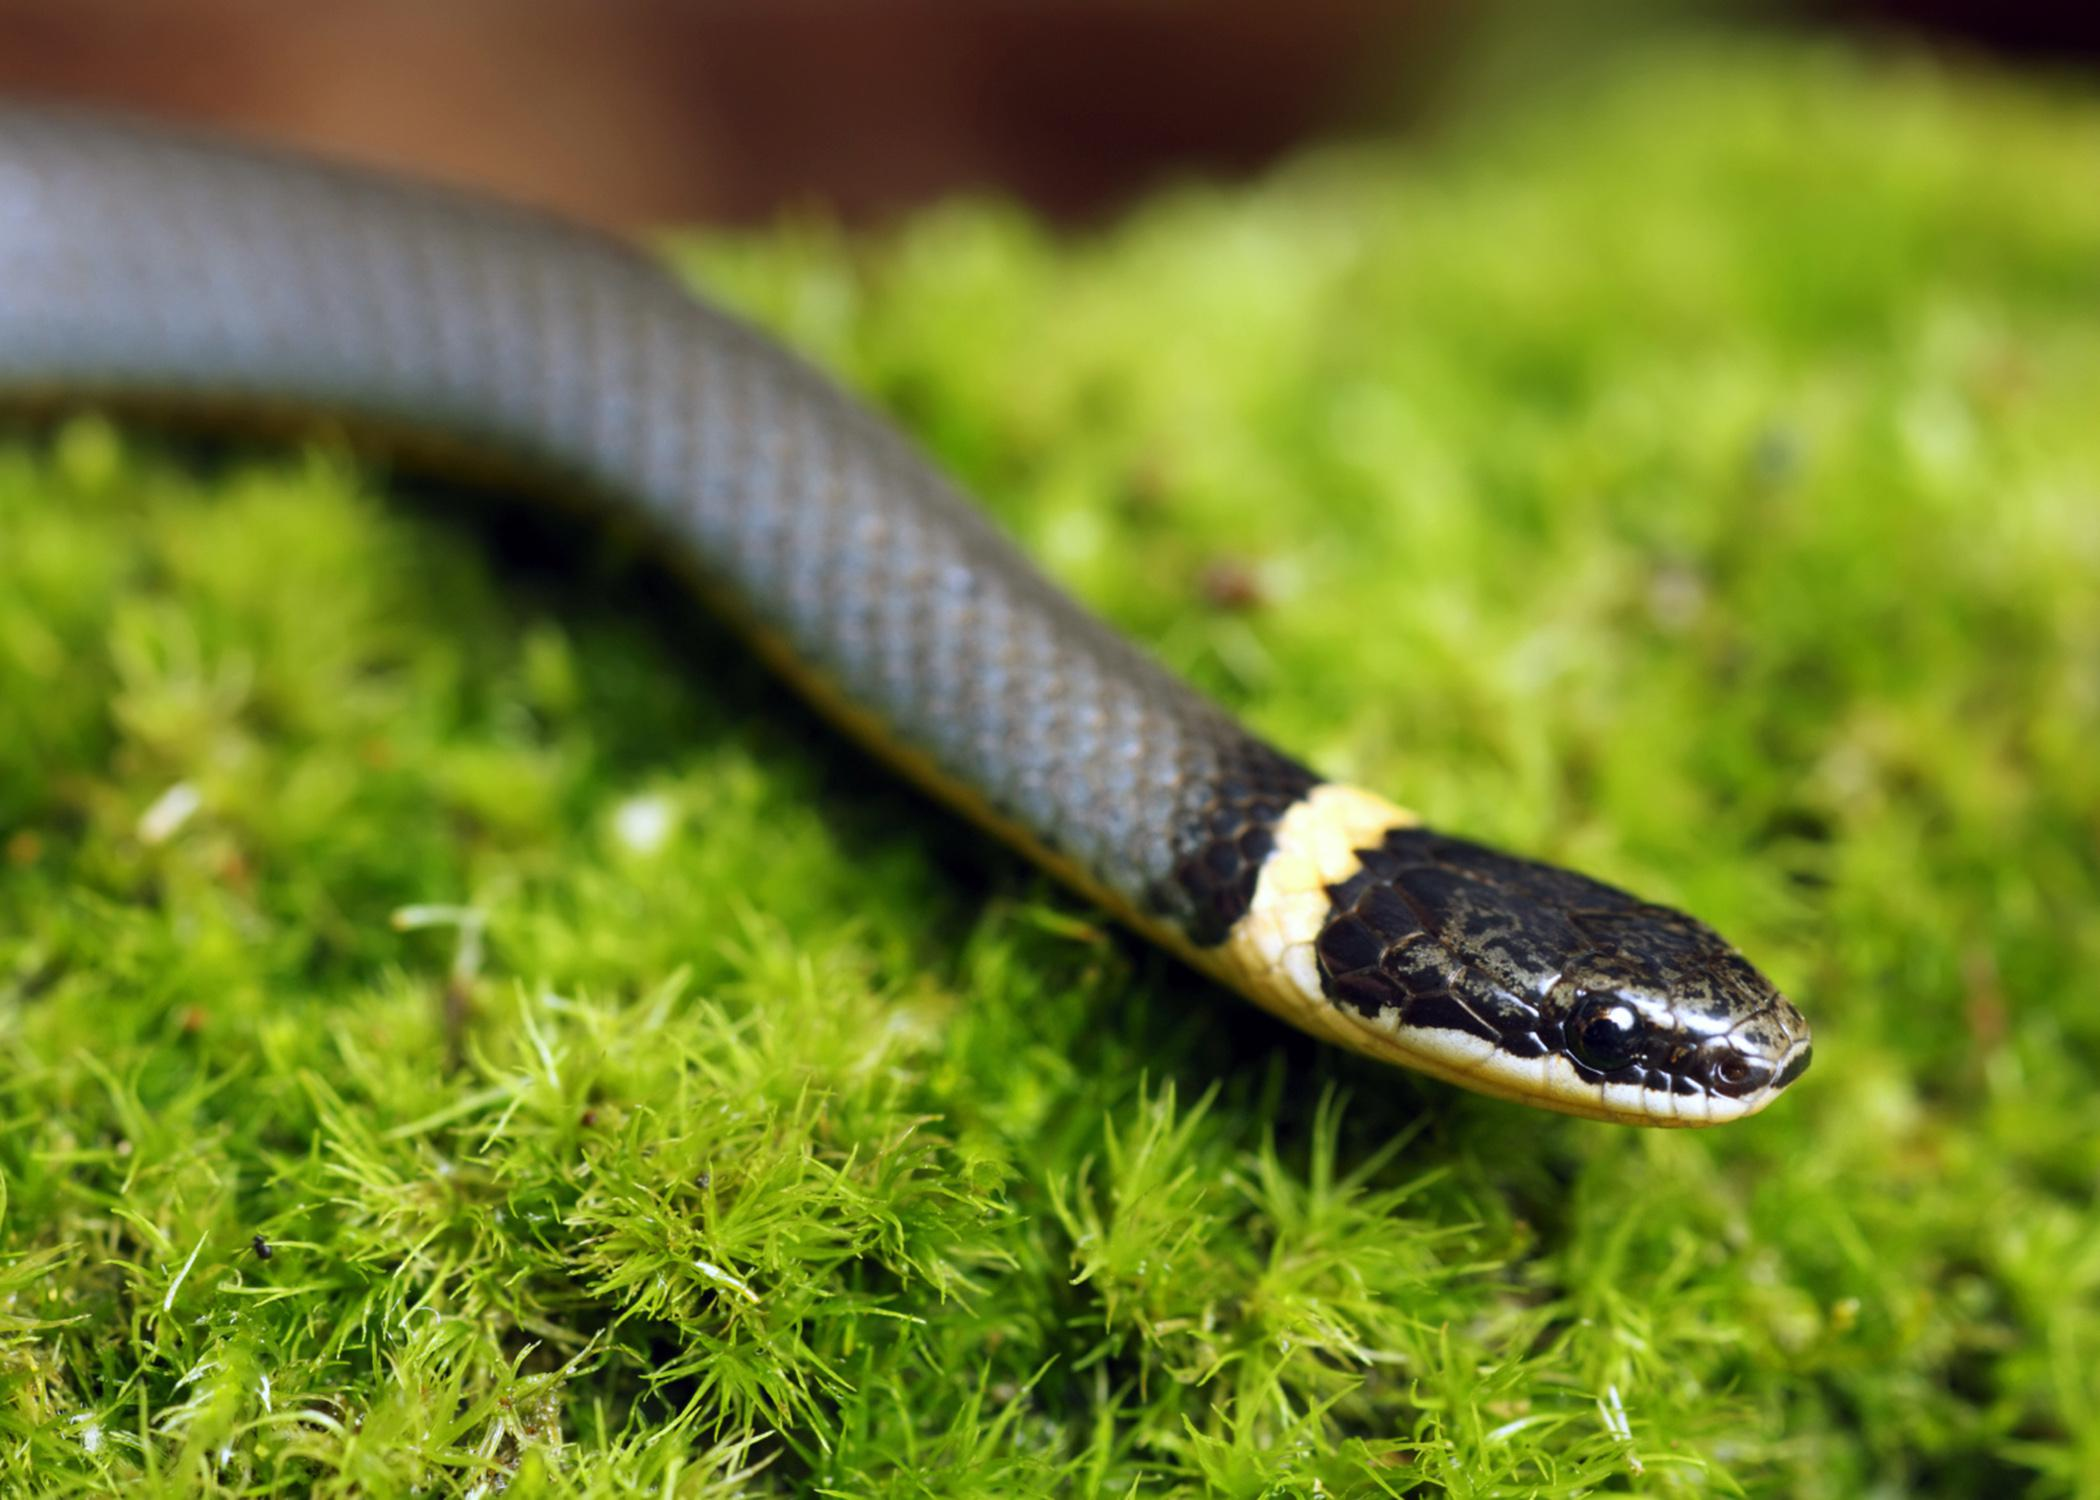 Most snakes in Mississippi, such as this ringneck snake, are nonvenomous and help control rodent and other nuisance wildlife populations. (Photo by iStockphoto)